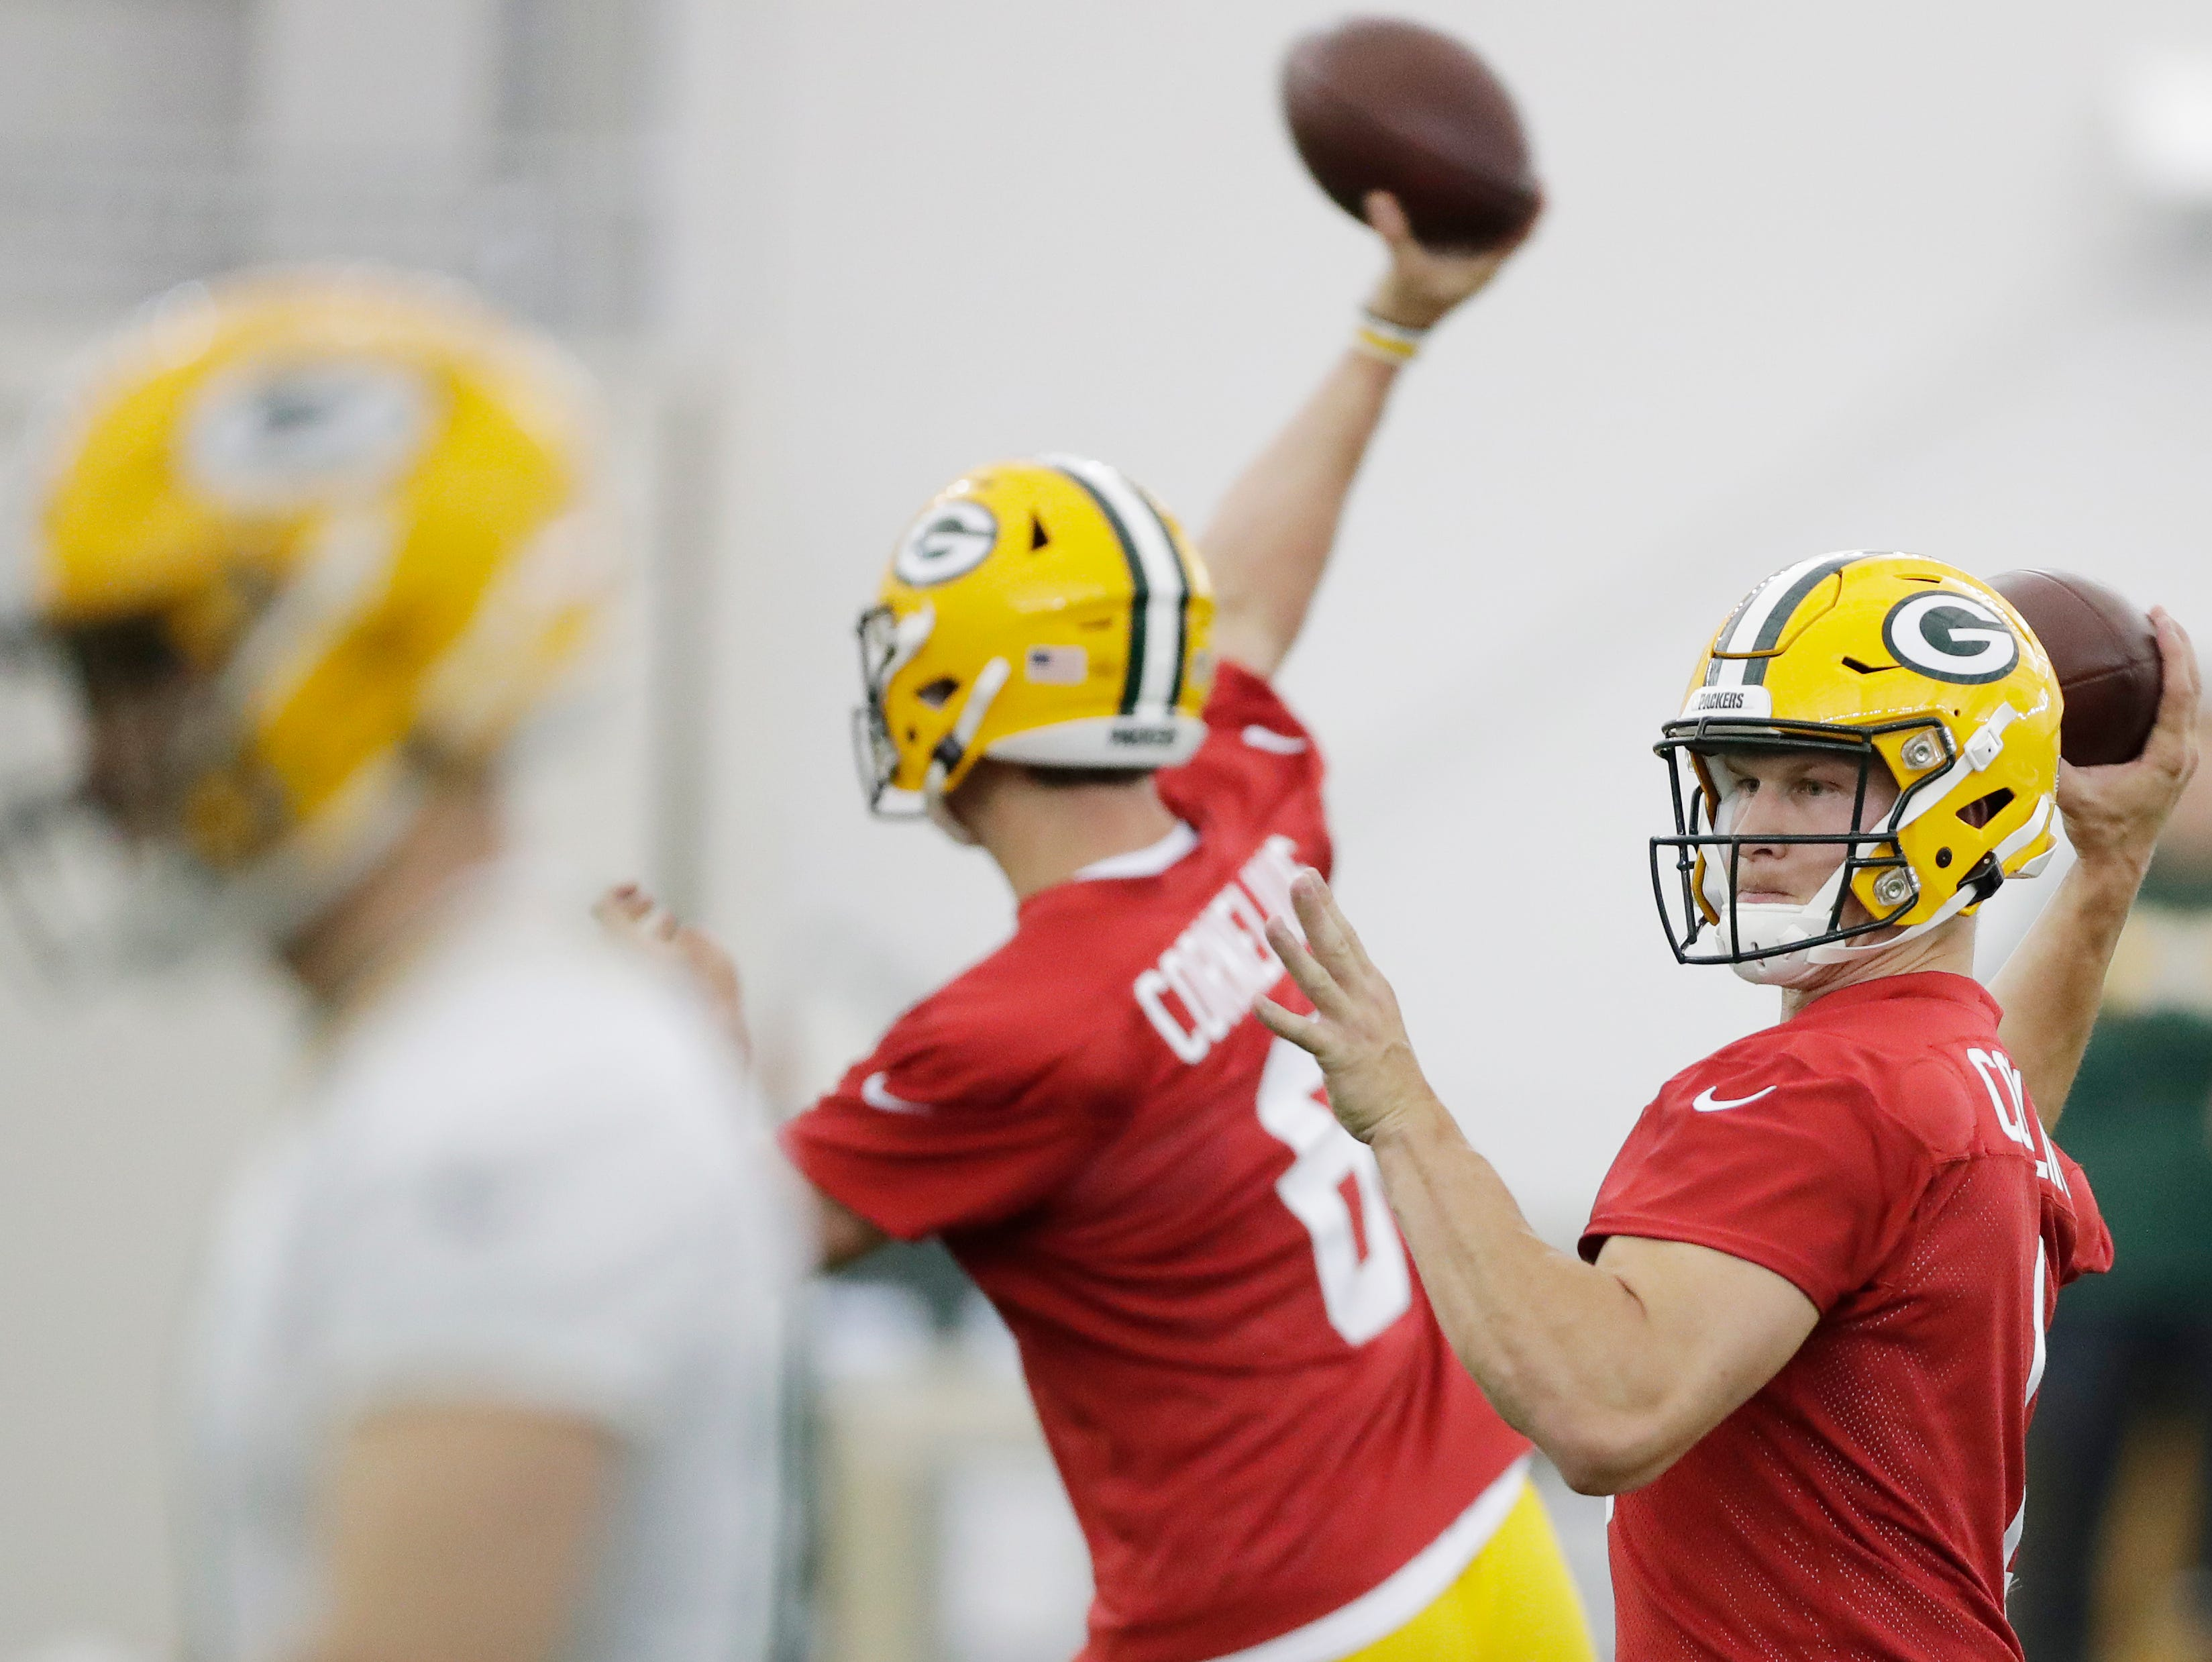 Green Bay Packers quarterback CJ Collins (1) during practice at rookie minicamp at the Don Hutson Center on Friday, May 3, 2019 in Ashwaubenon, Wis.Adam Wesley/USA TODAY NETWORK-Wis